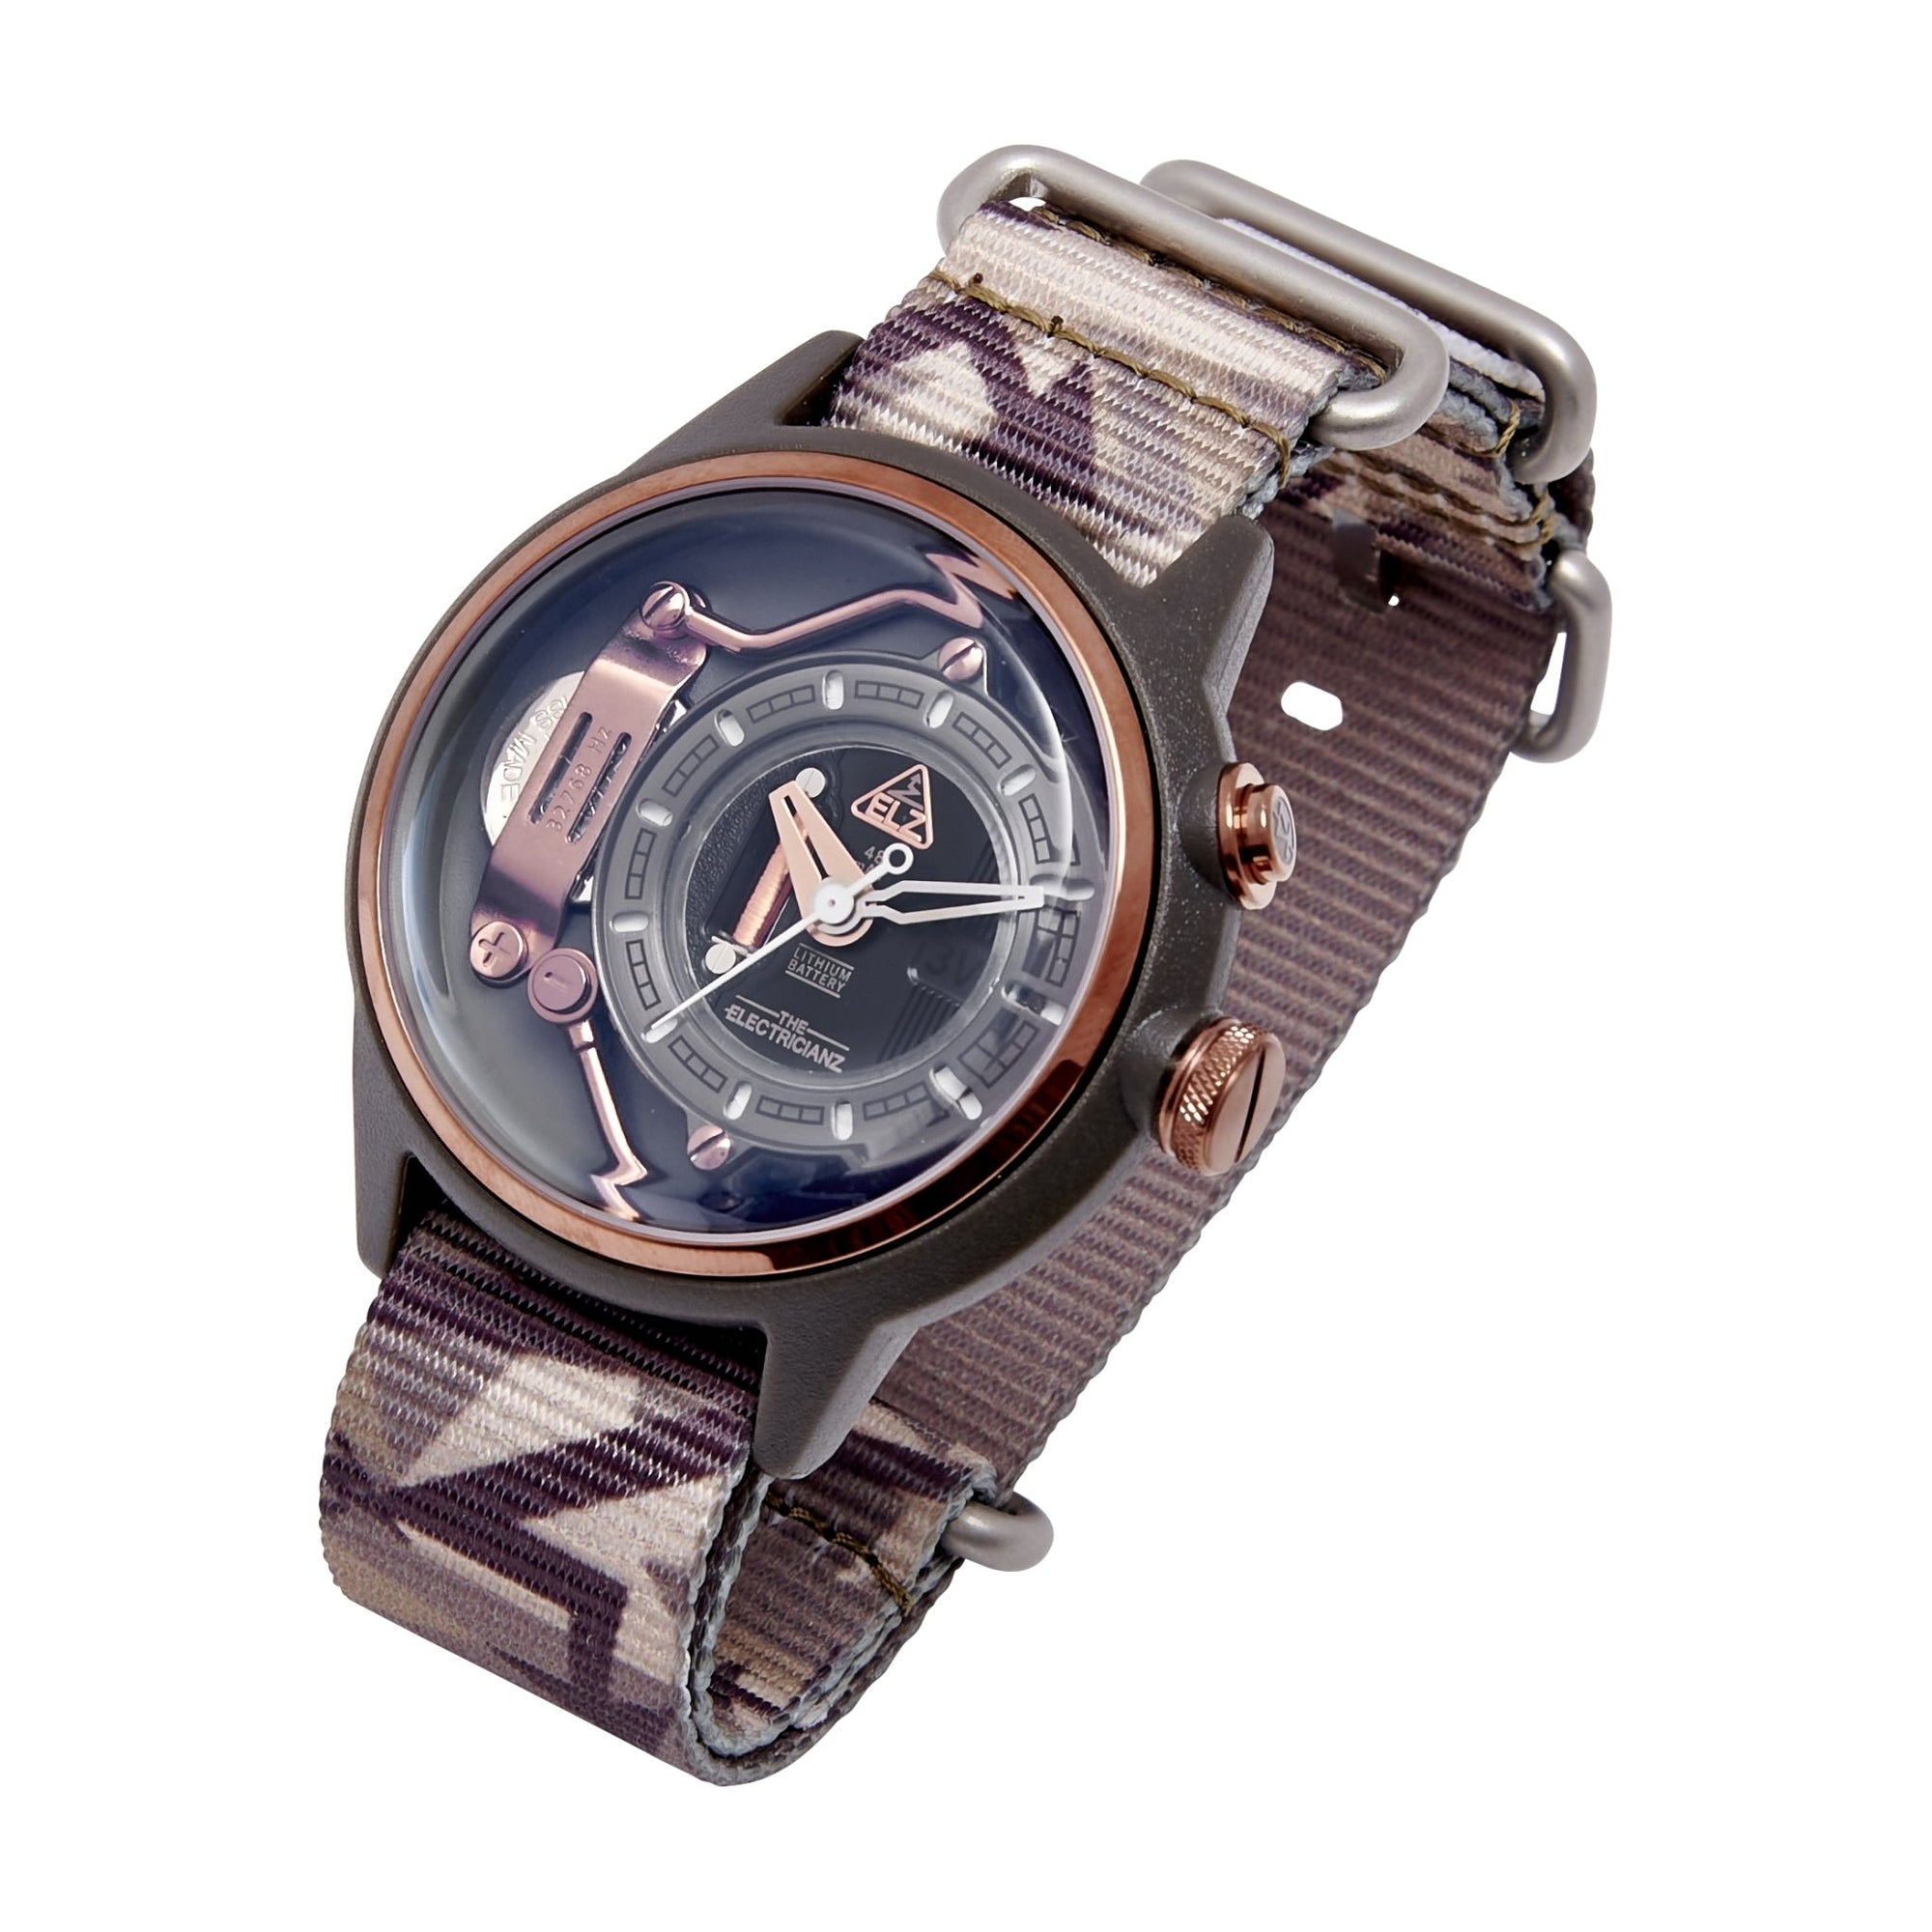 The Electricianz Nylon The Mokaz Camo - Watches & Crystals